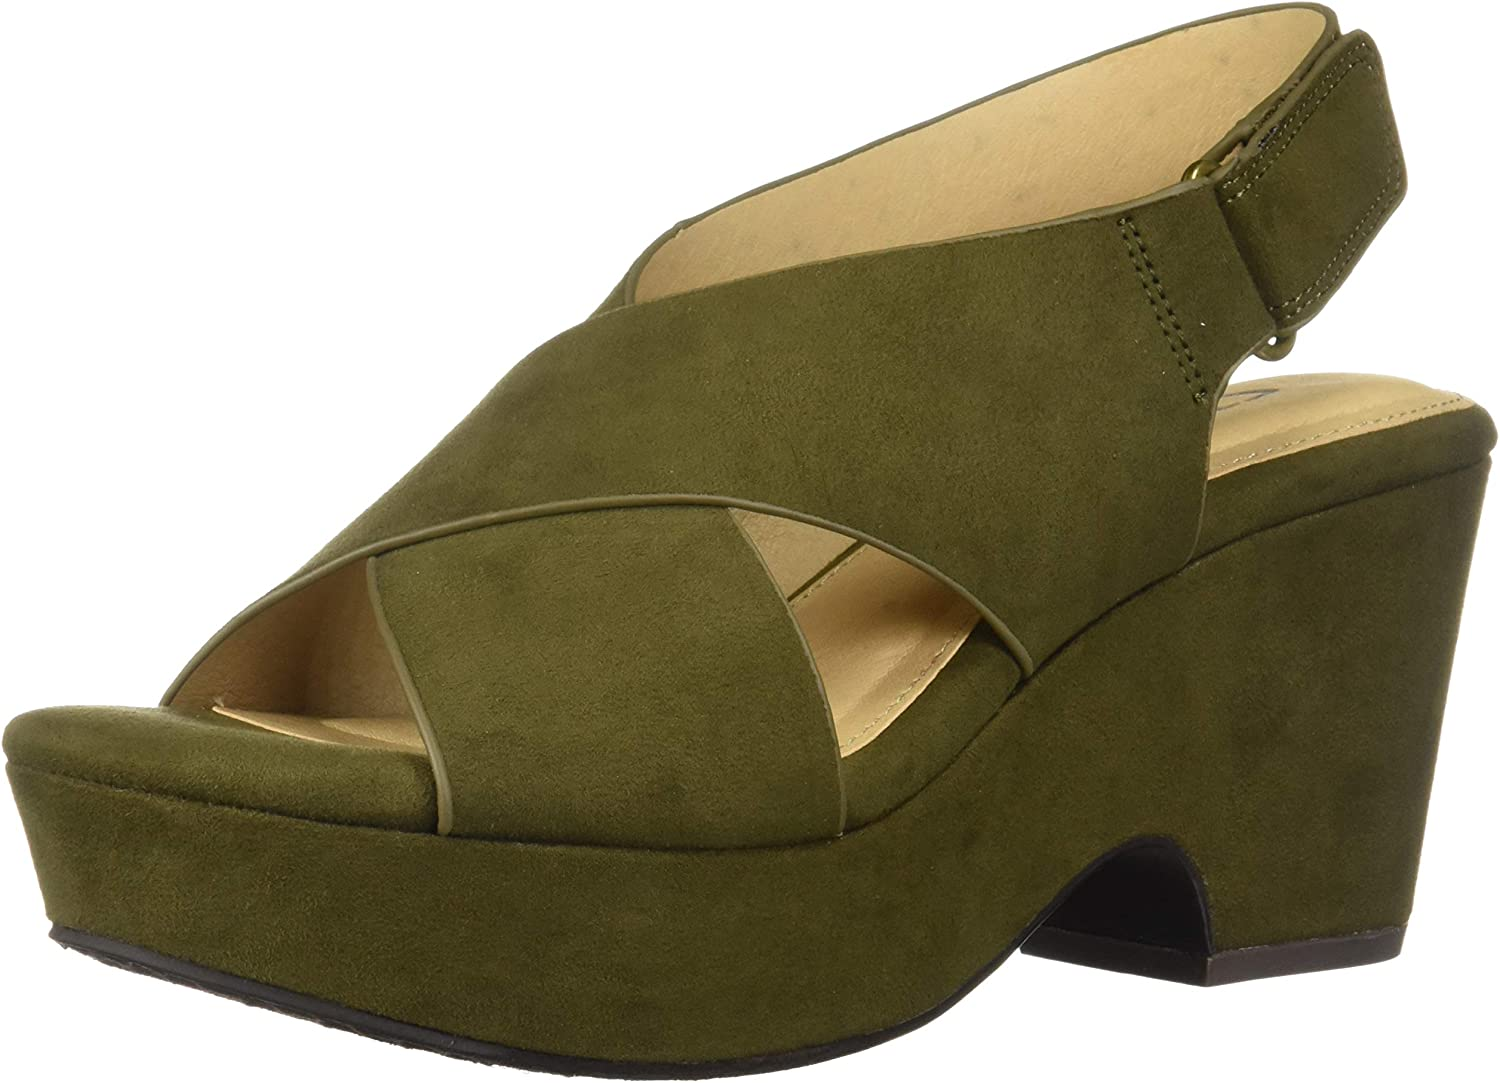 CL by Chinese Laundry Women's Capital Heeled Sandal